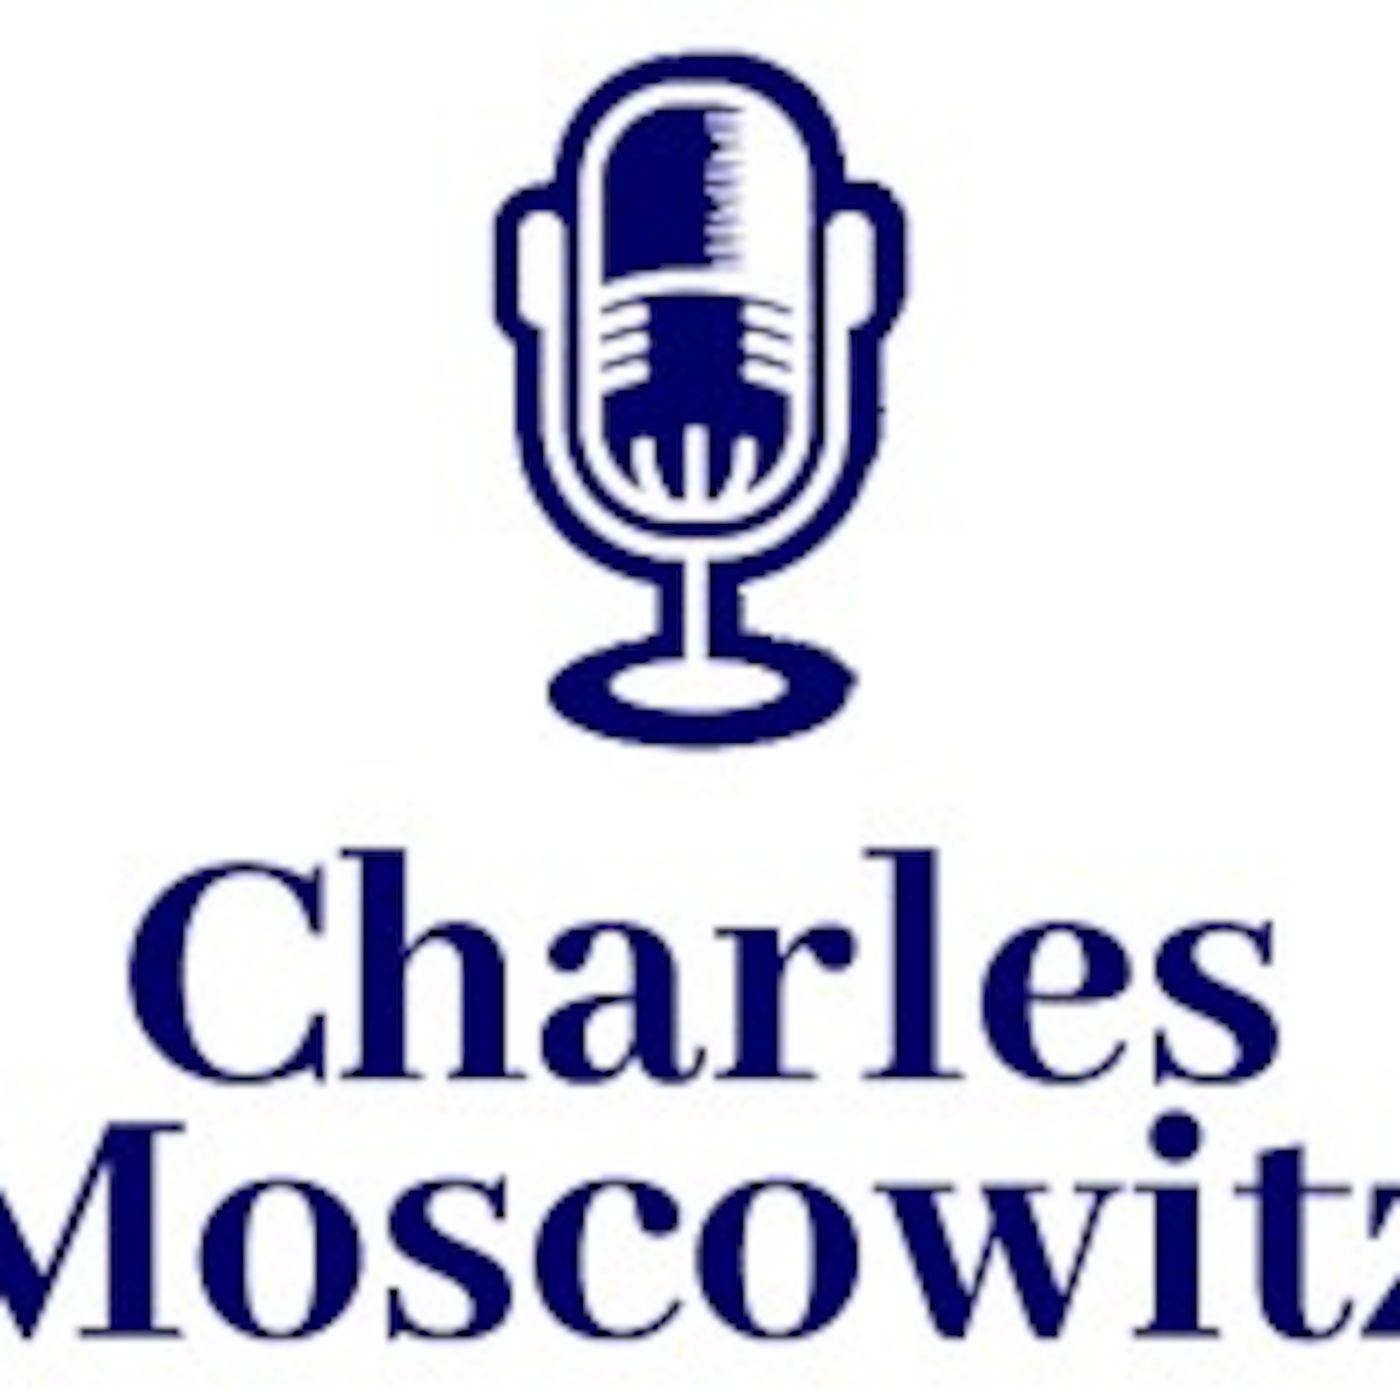 Episode 890: Charles Moscowitz LIVE